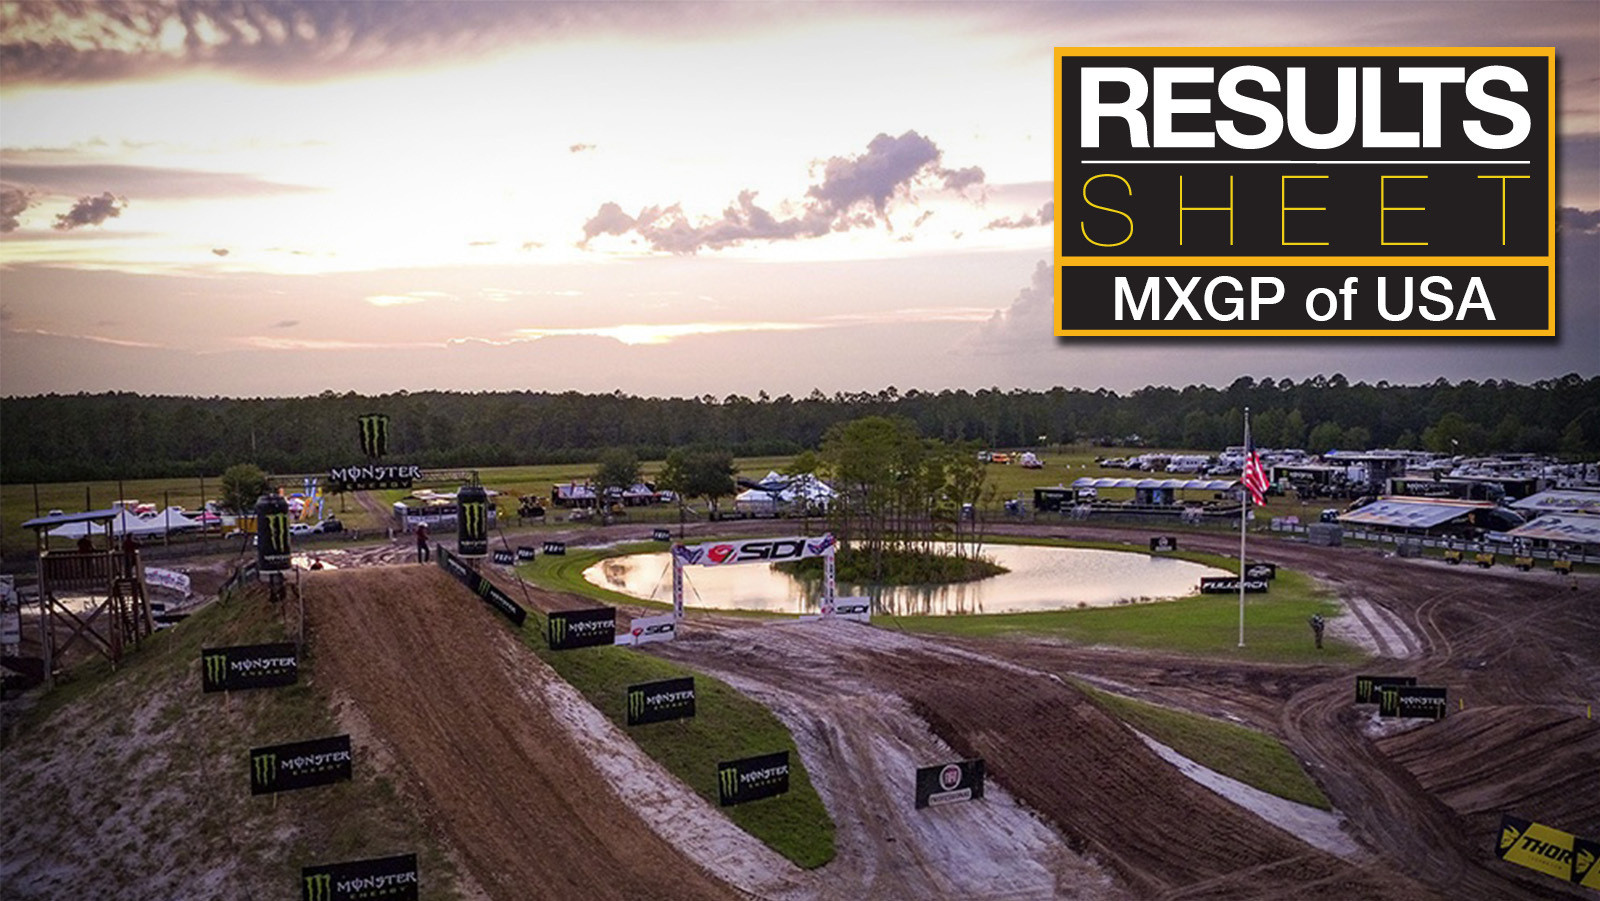 Results Sheet: 2017 MXGP of USA - Saturday